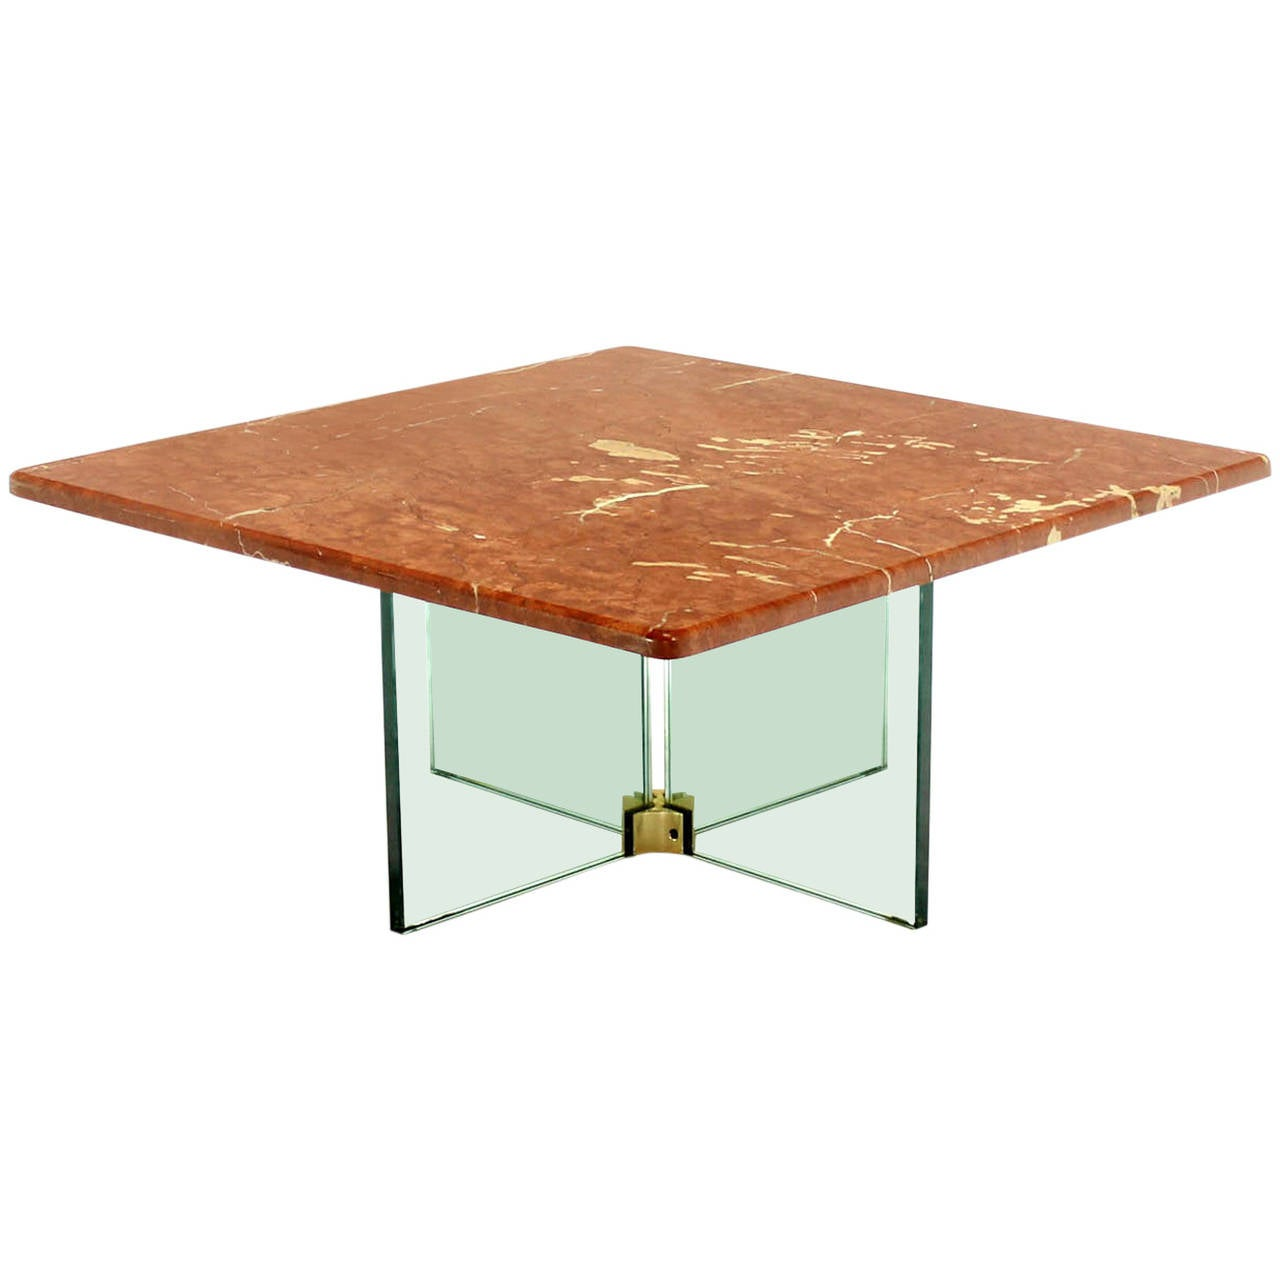 Glass X Cross Base Coffee Table W Marble Top For Sale At 1stdibs: bases for coffee tables